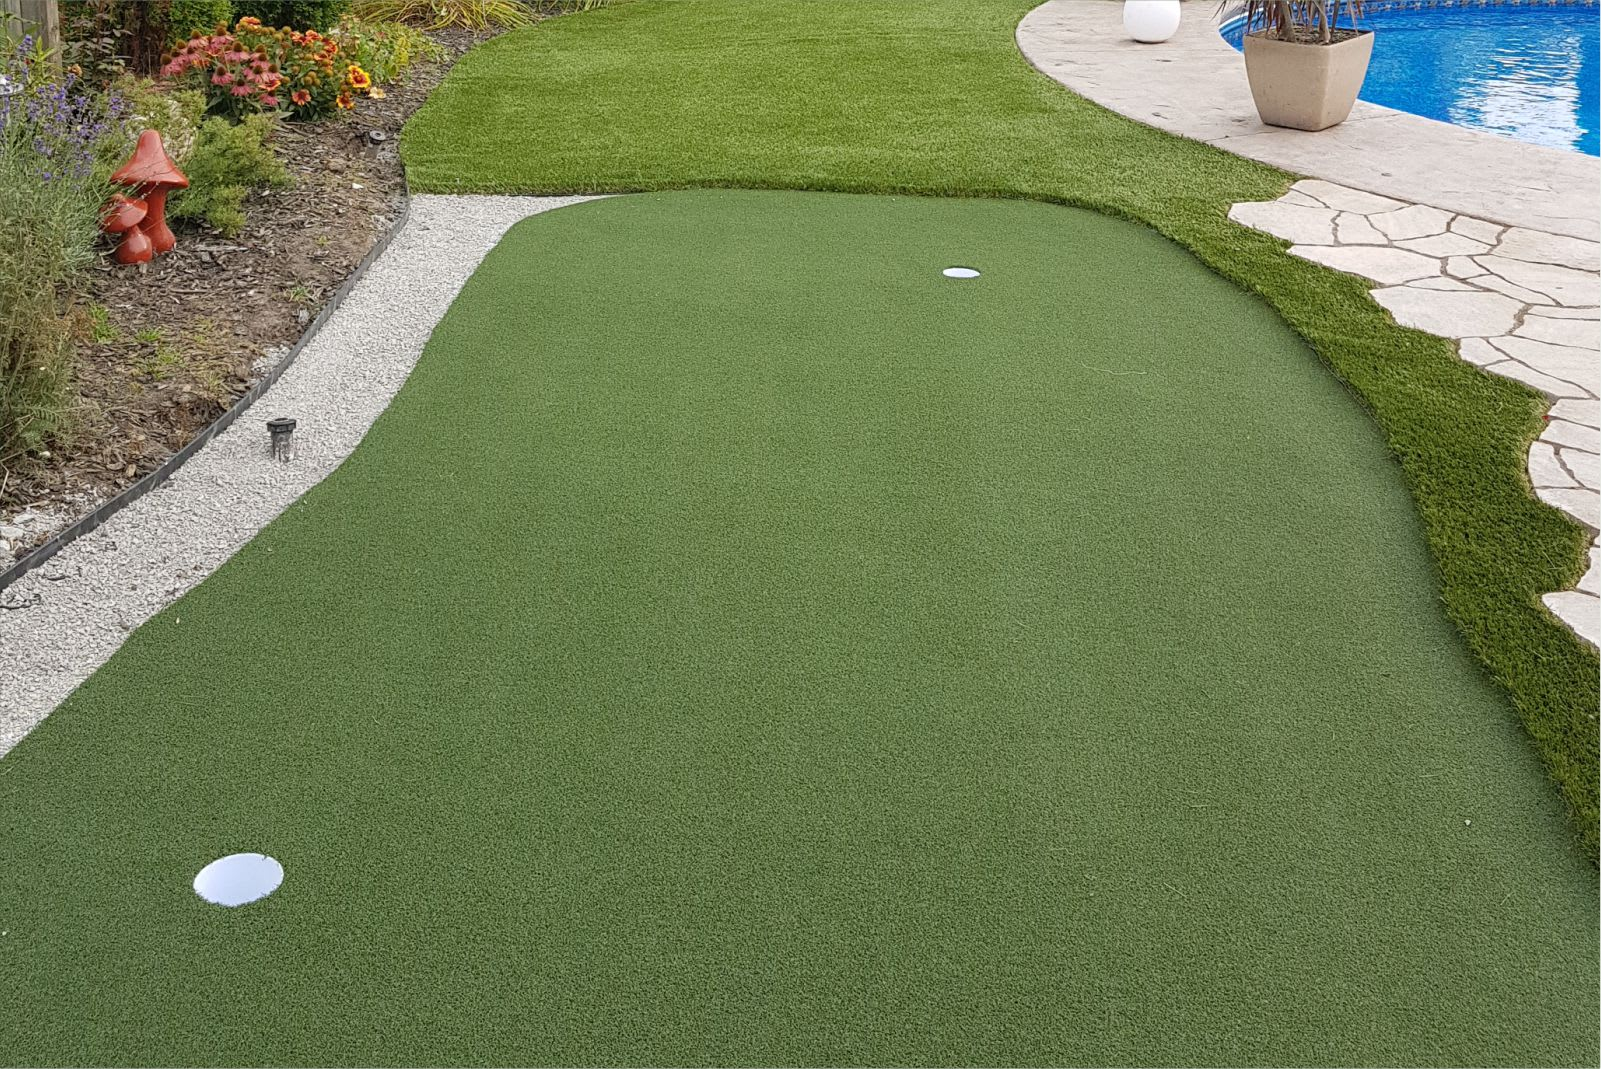 landscape turf with putting green in backyard